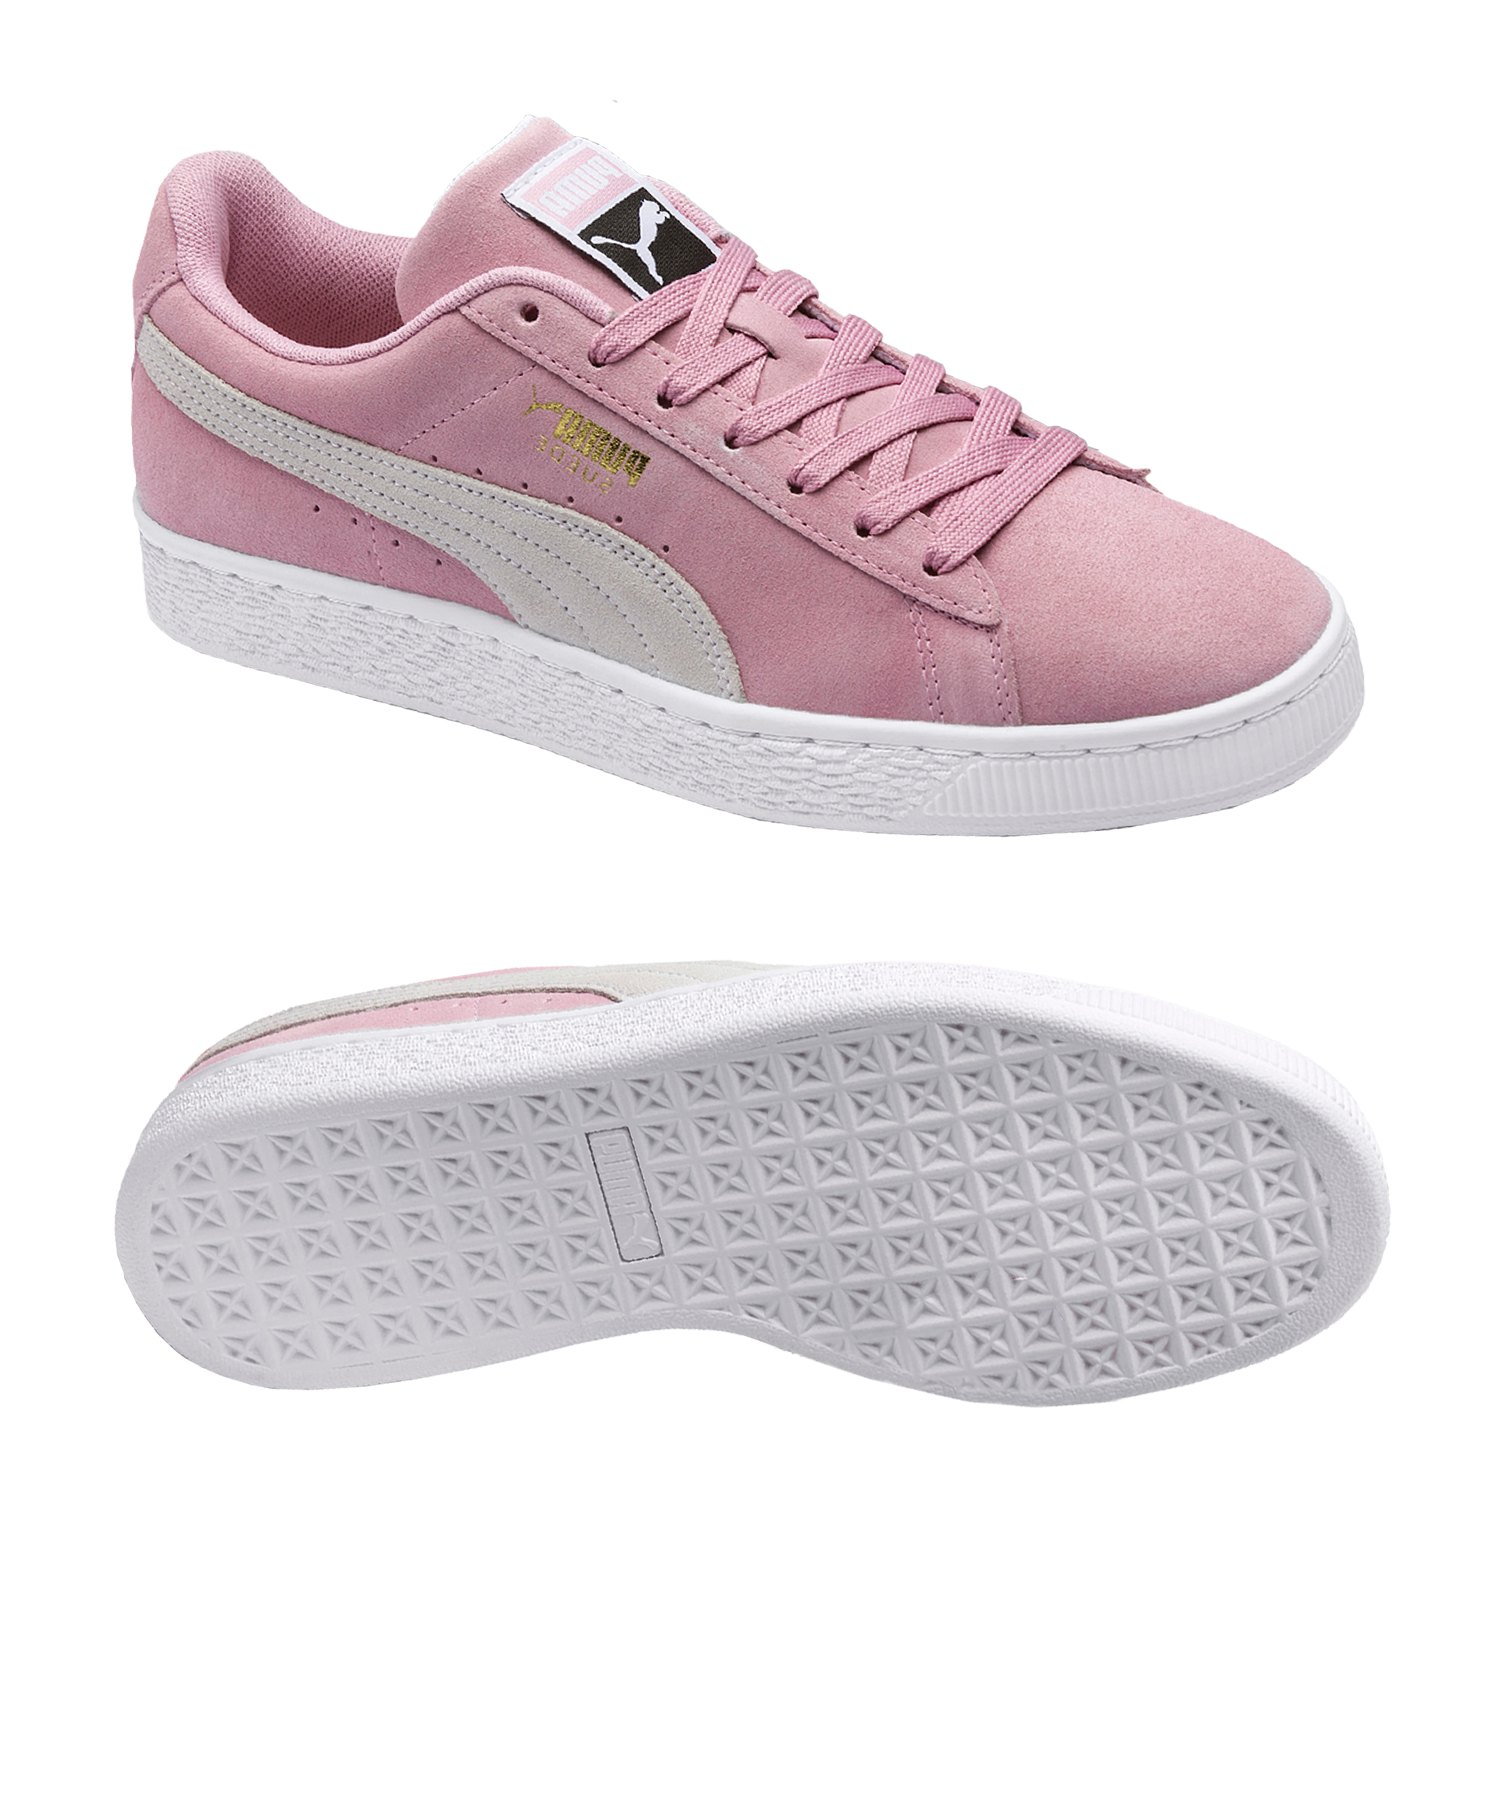 PUMA Suede Classic Sneaker Pink Weiss F62 - pink